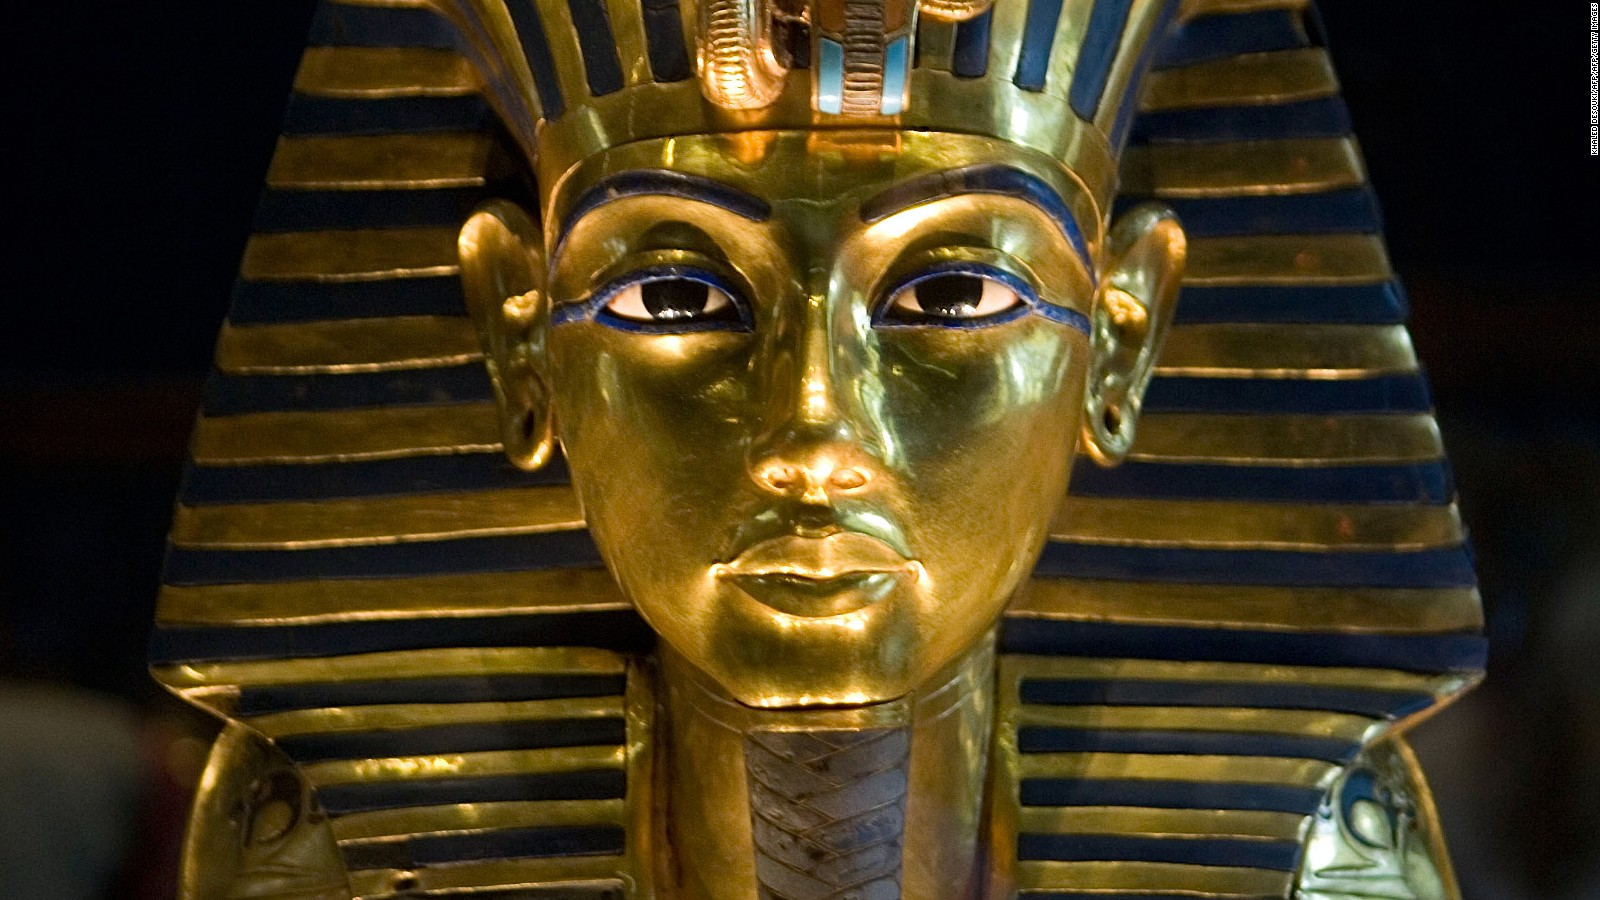 Egypt: Radar scans at Tutankhamun's tomb reveal no secret chamber